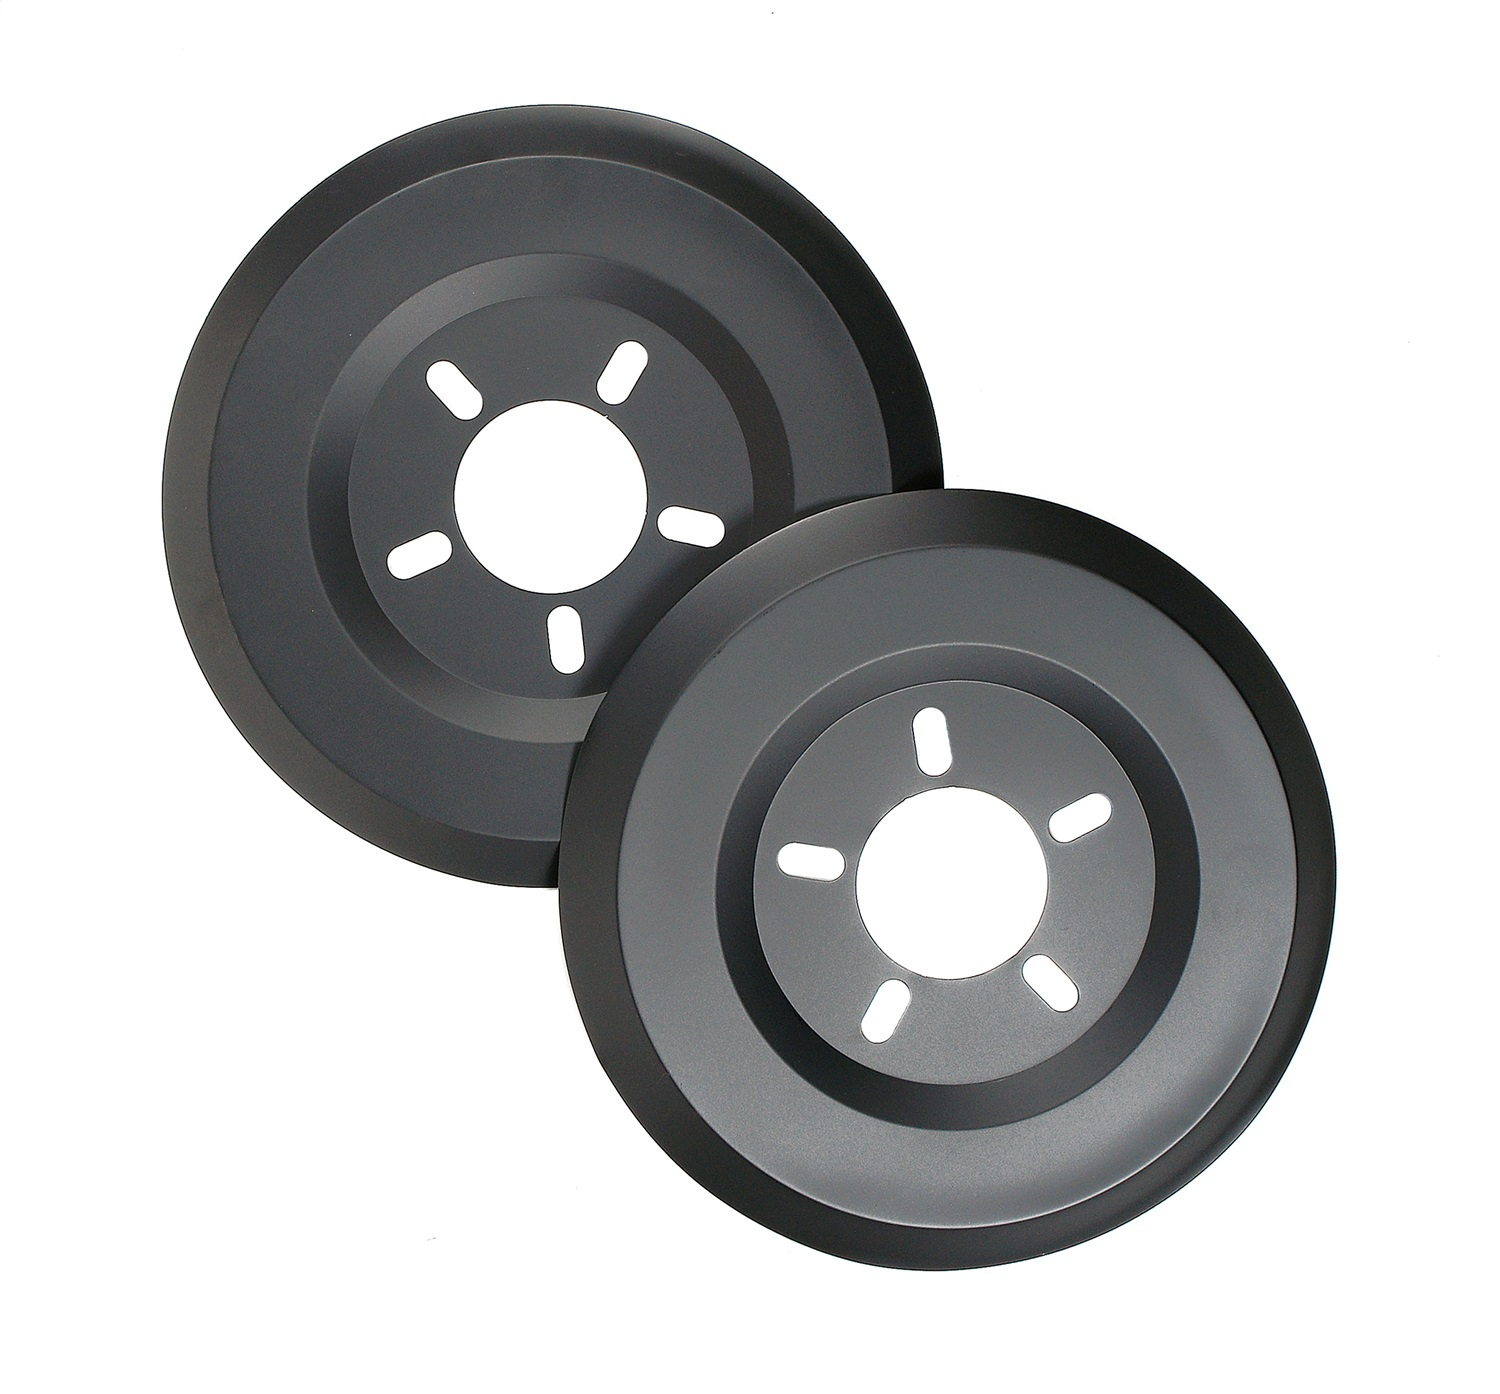 Mr Gasket 6904MRG Wheel Dust Shields